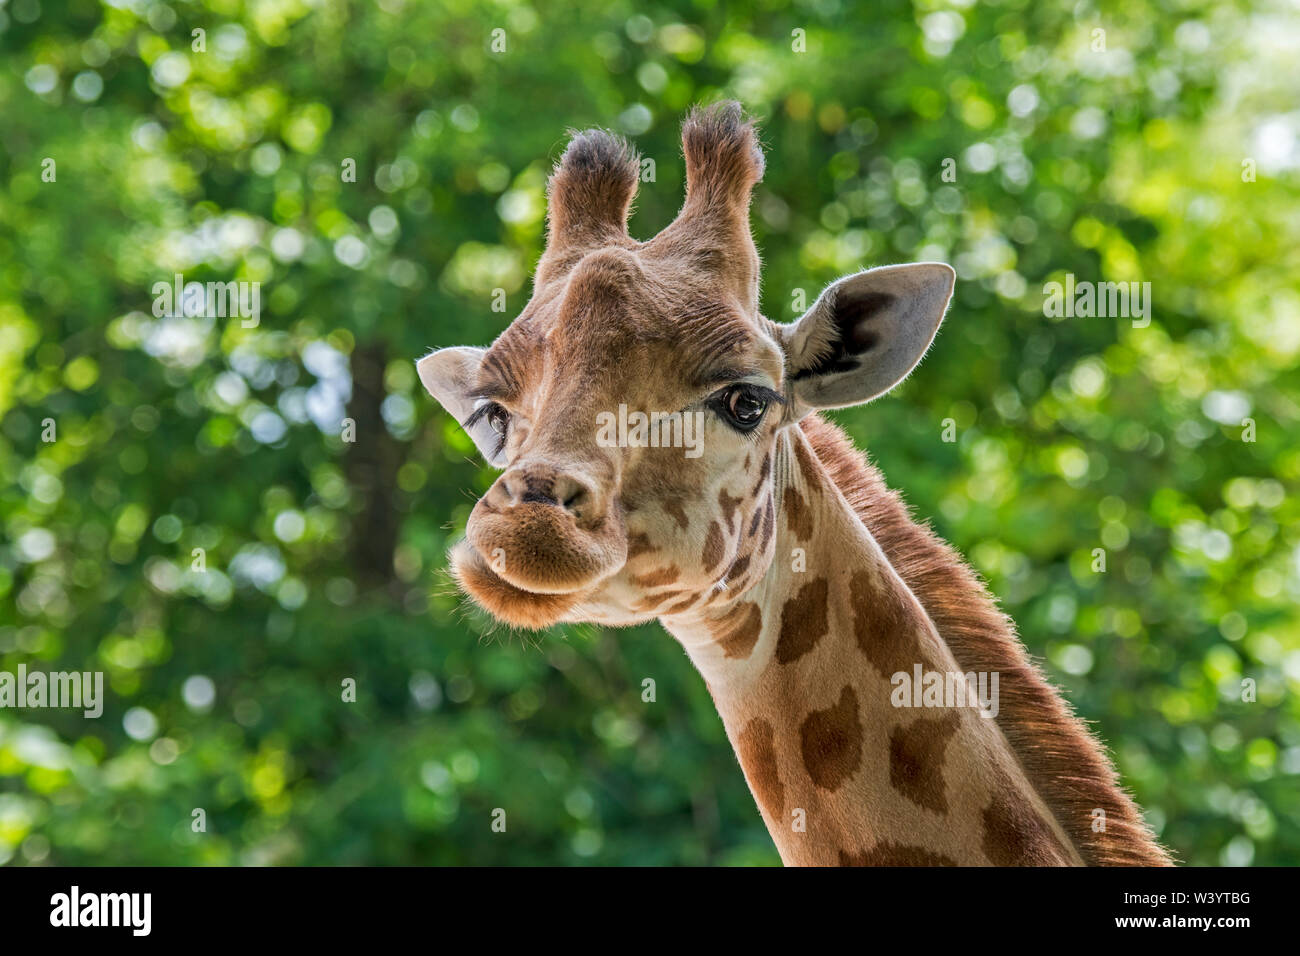 Kordofan giraffe (Giraffa camelopardalis antiquorum) close-up of head, native to Cameroon, Chad, Central African and Sudan - Stock Image